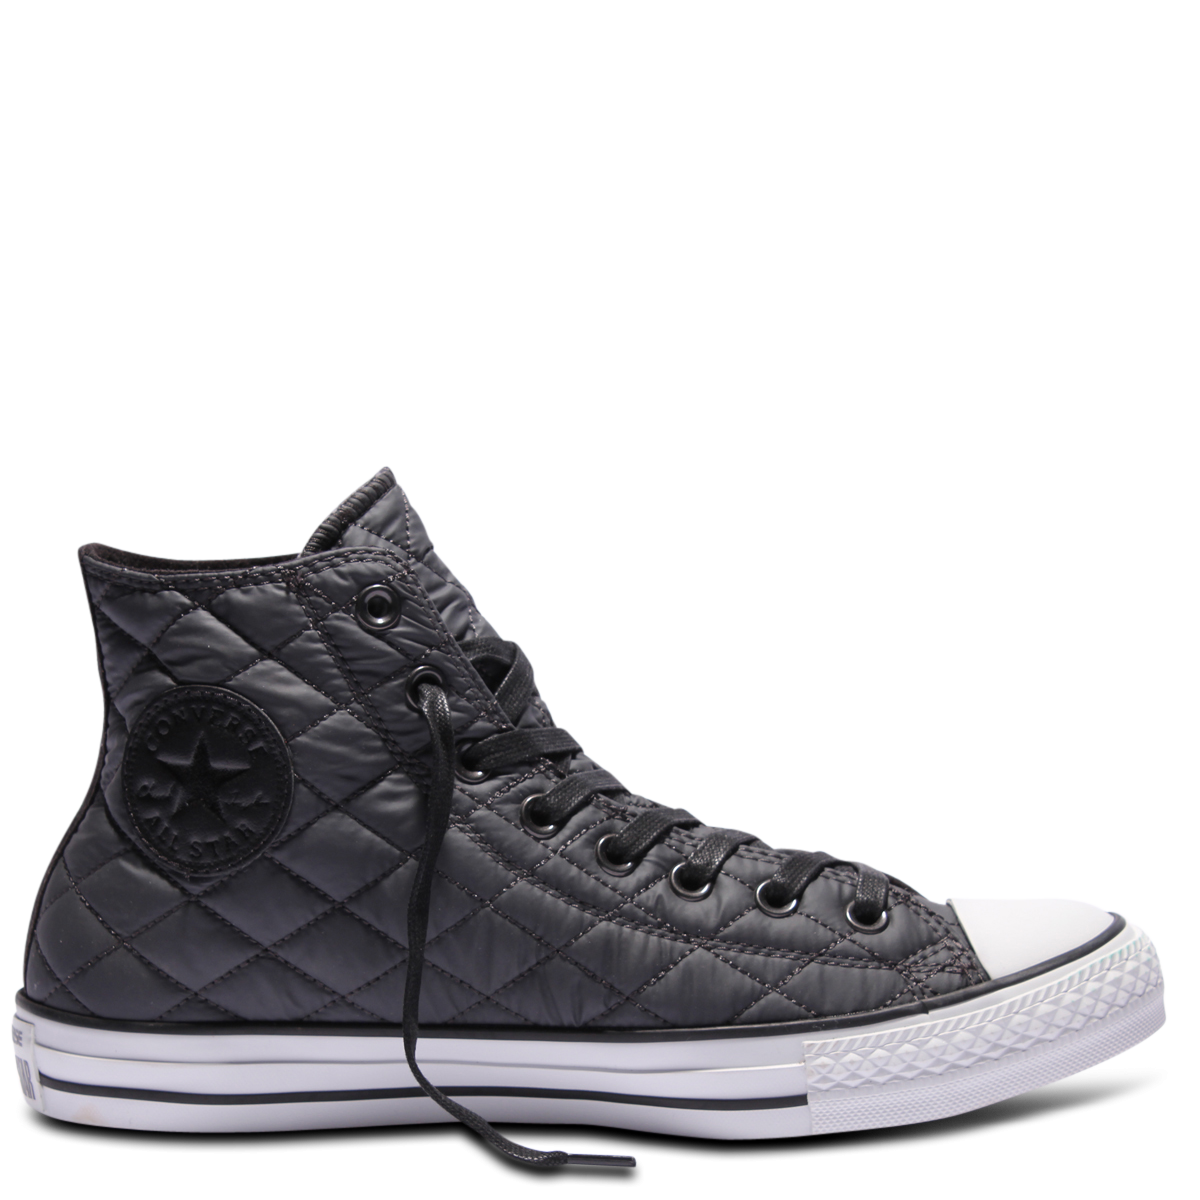 lrg tealwhite quilted hi top teal tvardp clove converse taylor atomic star chuck wp all clovedark boot high leather hightop quilt dark